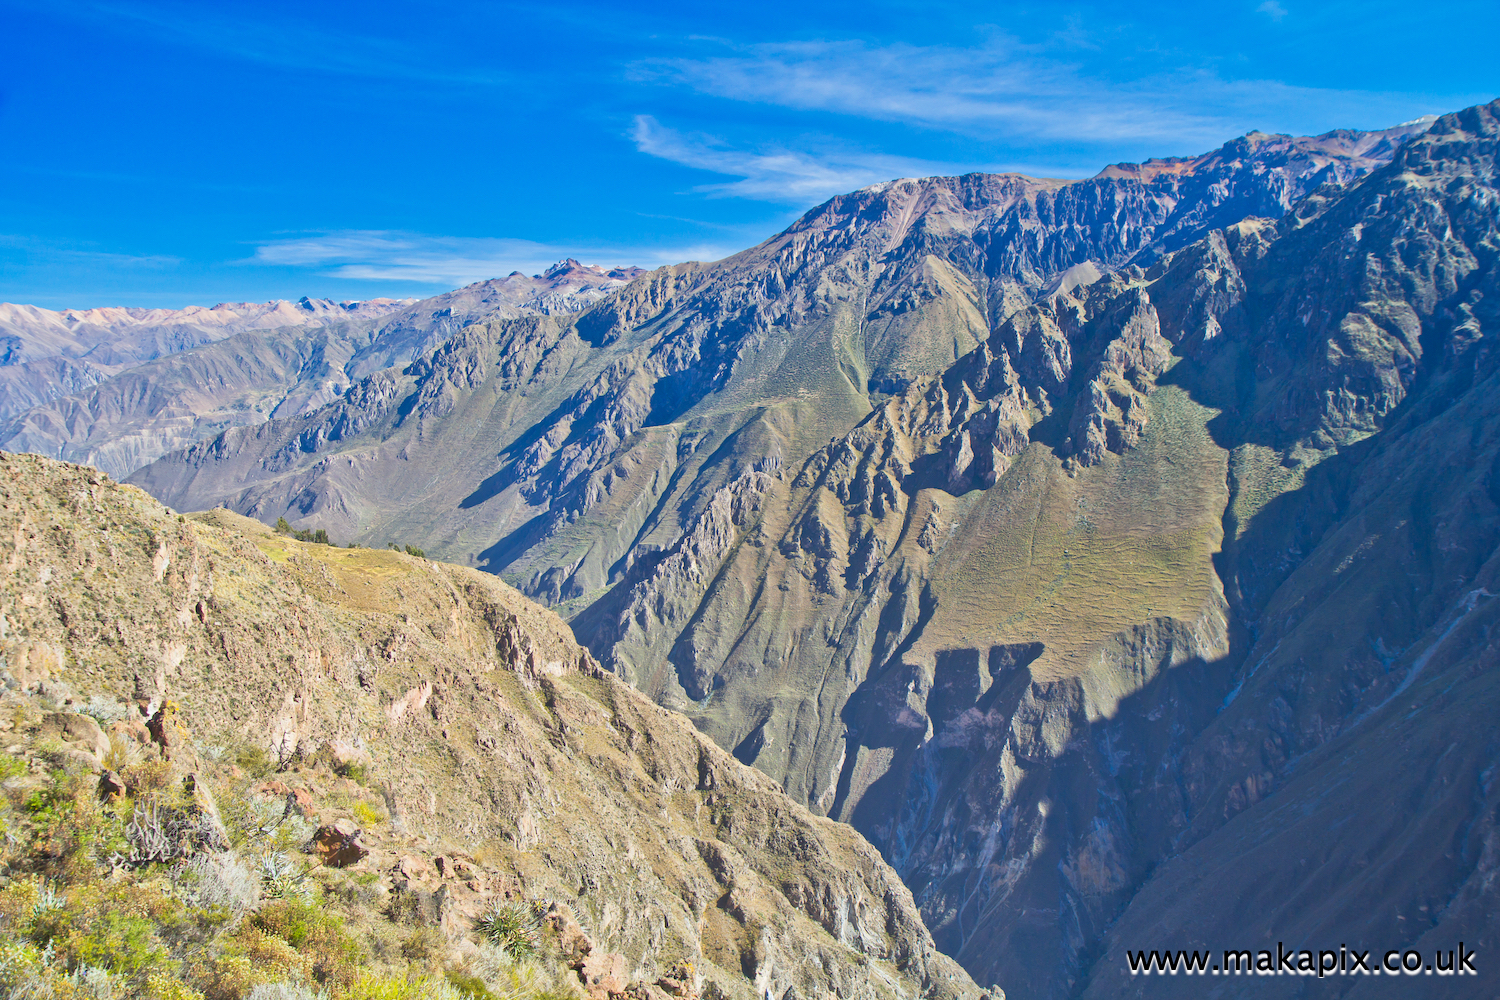 Colca Canyon, Peru, famed as one of the world's deepest